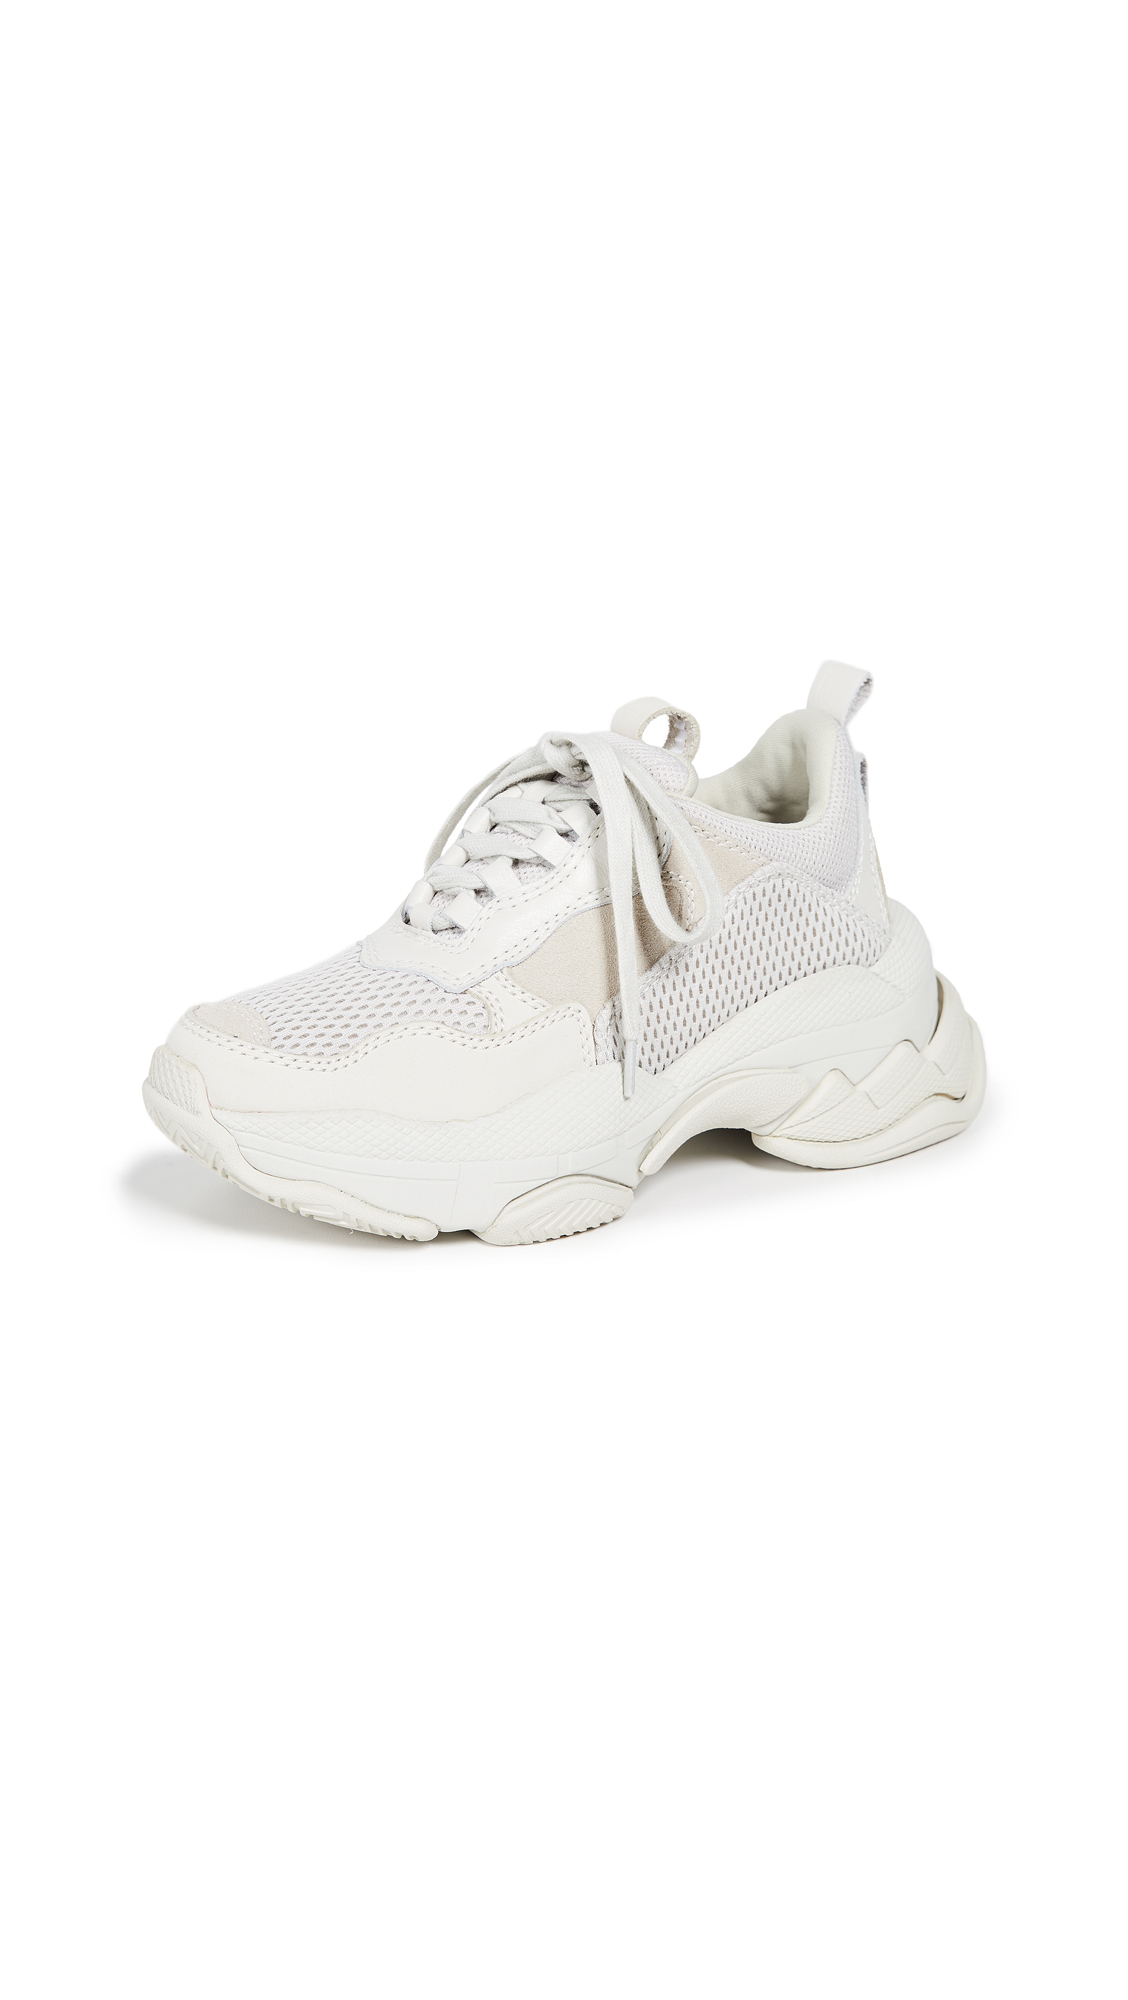 Jeffrey Campbell Lo-Fi Sneakers - Off White Mesh